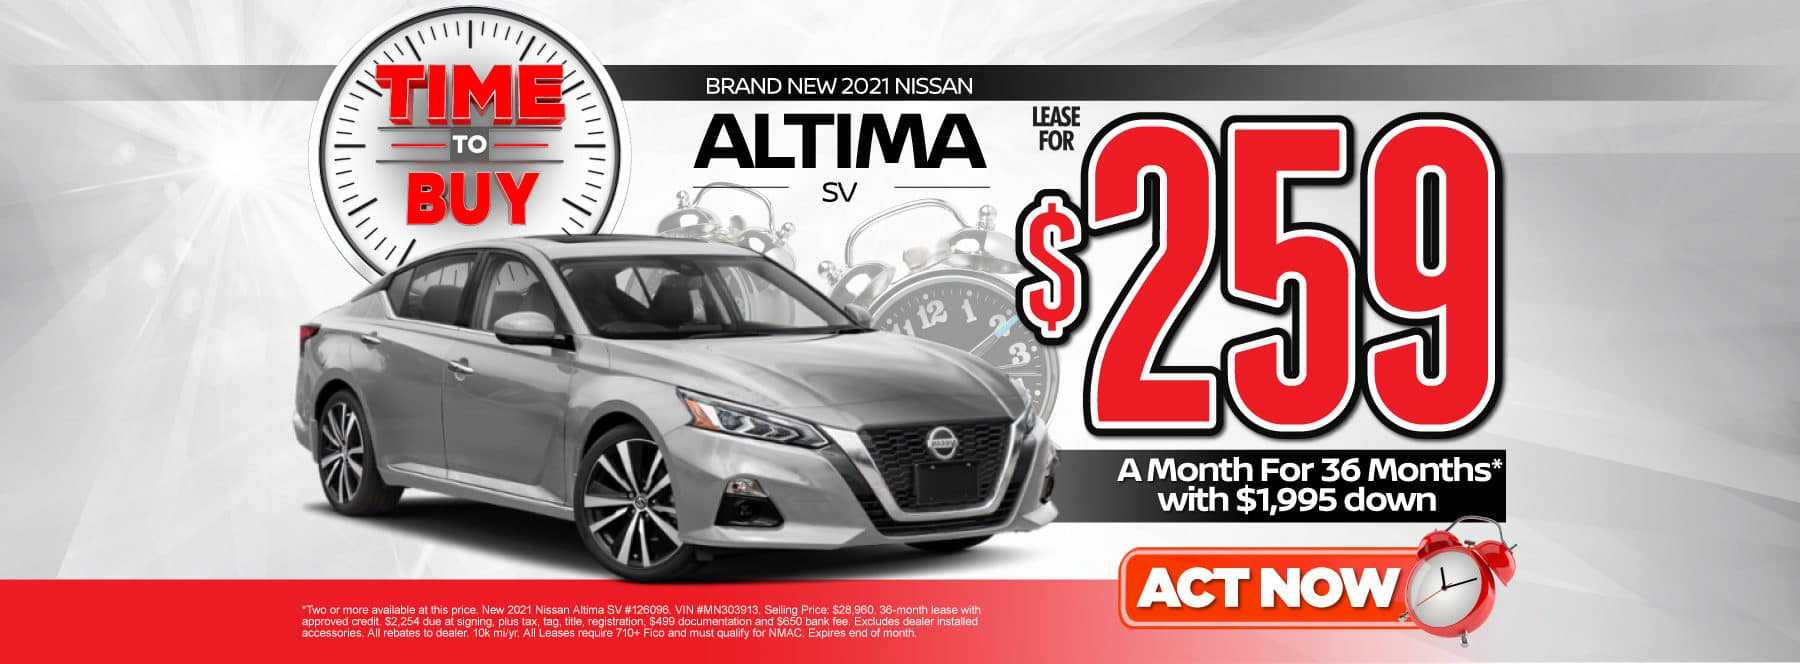 New 2021 Nissan Altima | Lease for $259 a month | Act Now